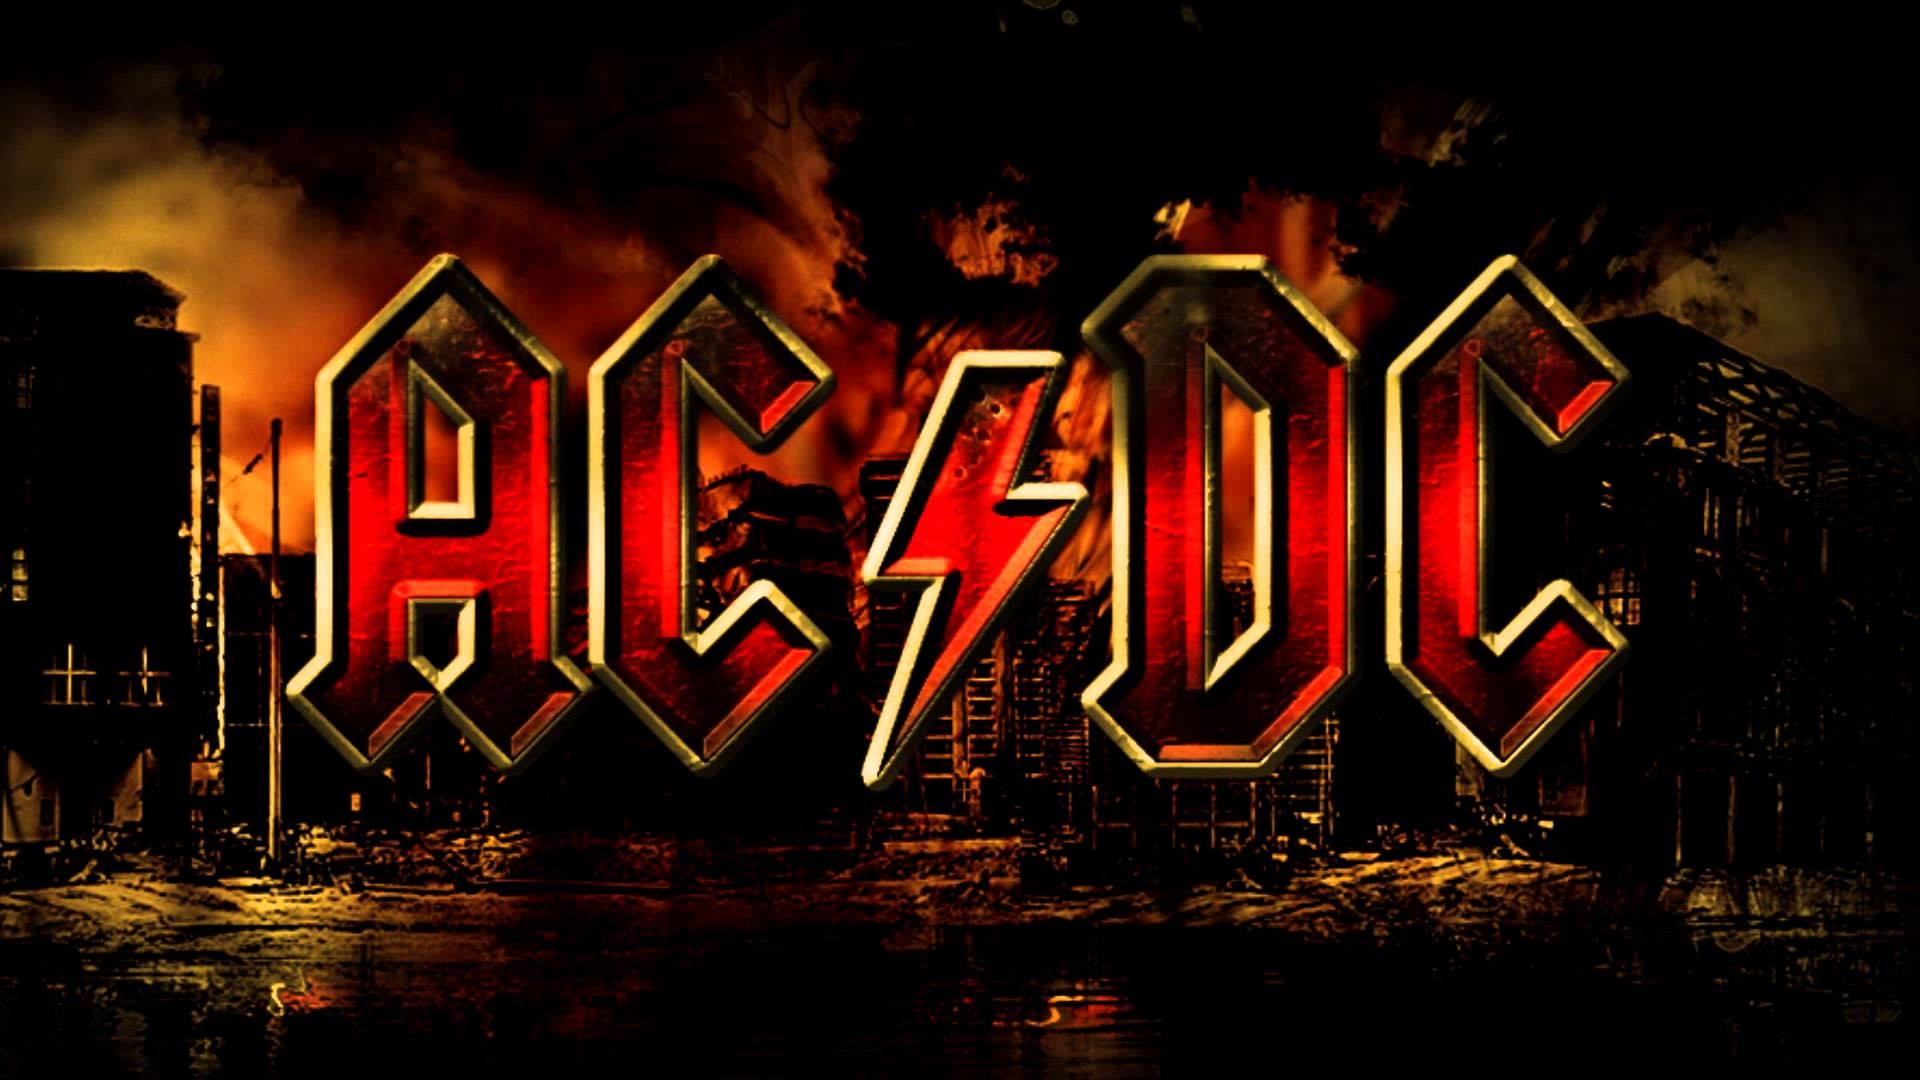 Music Wallpaper: Ac Dc Thunderstruck Wallpapers Phone with